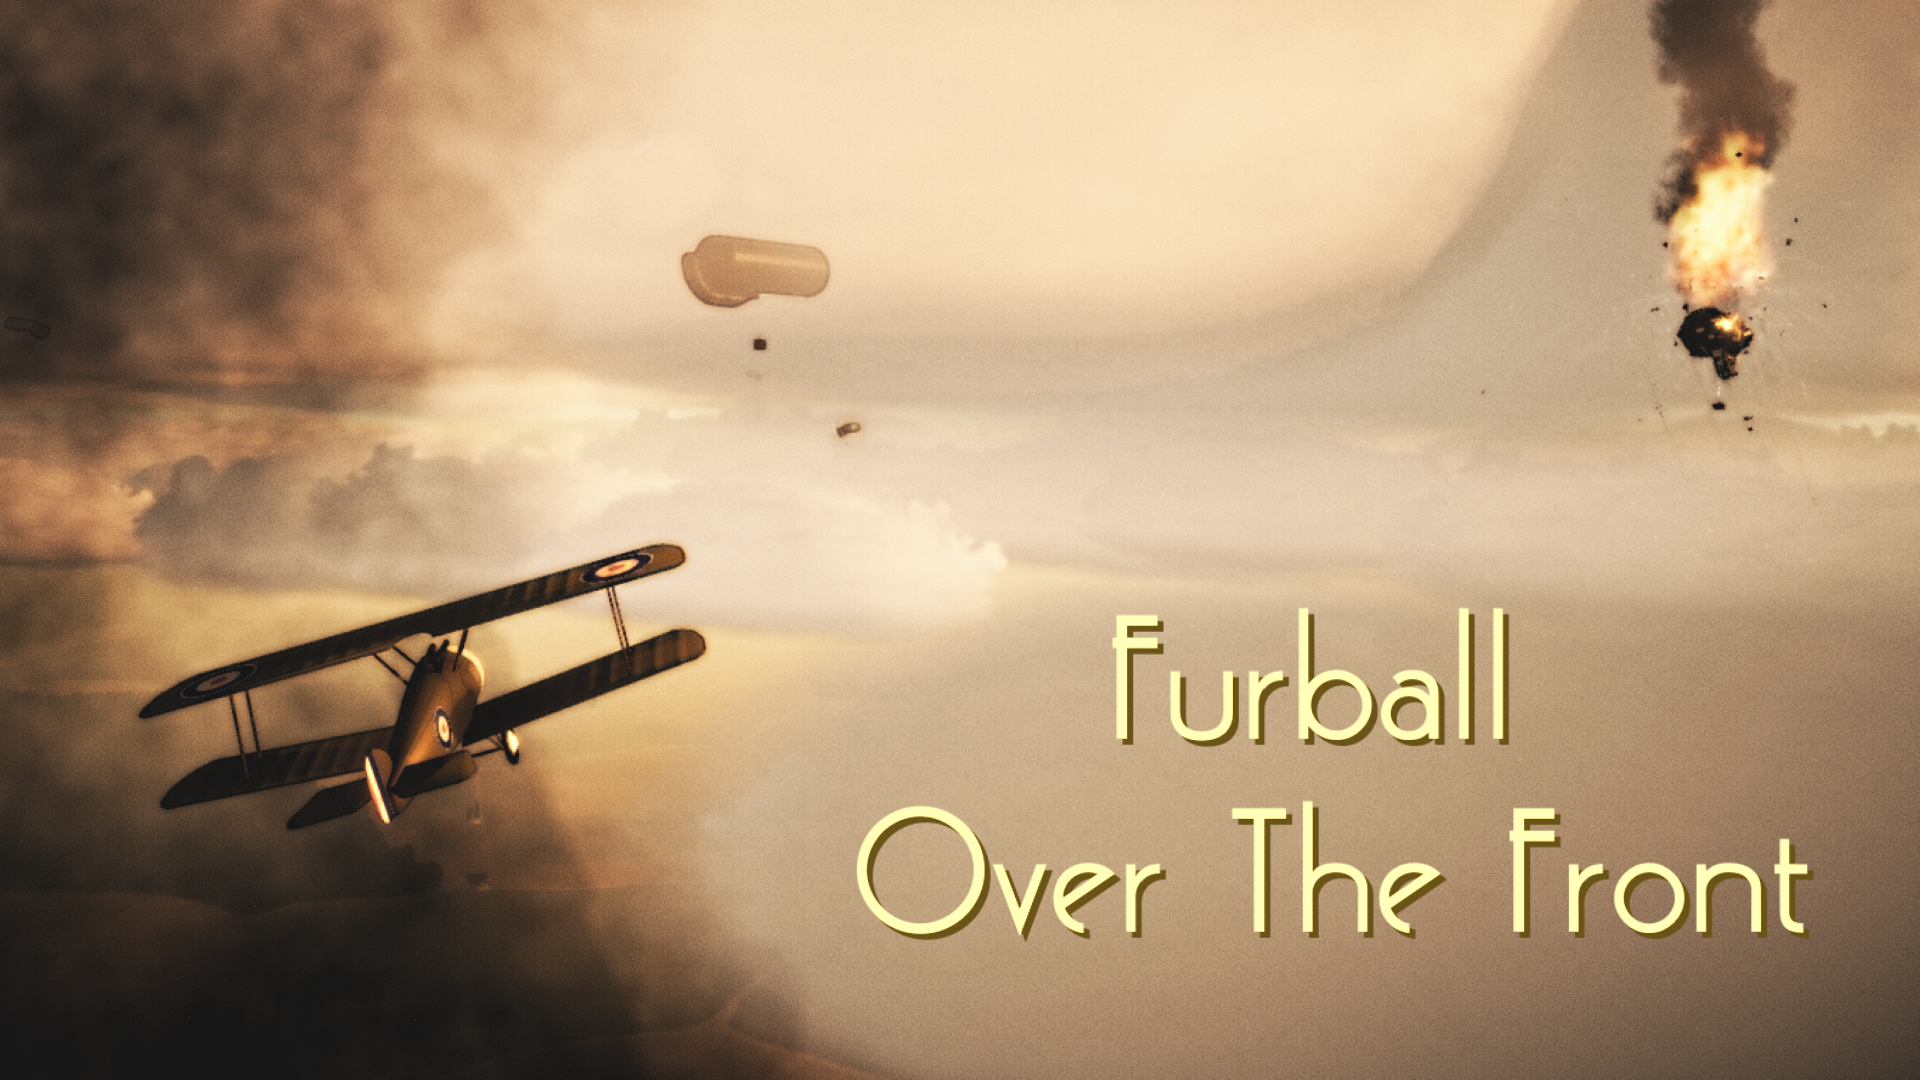 Furball Over the Front (2020)